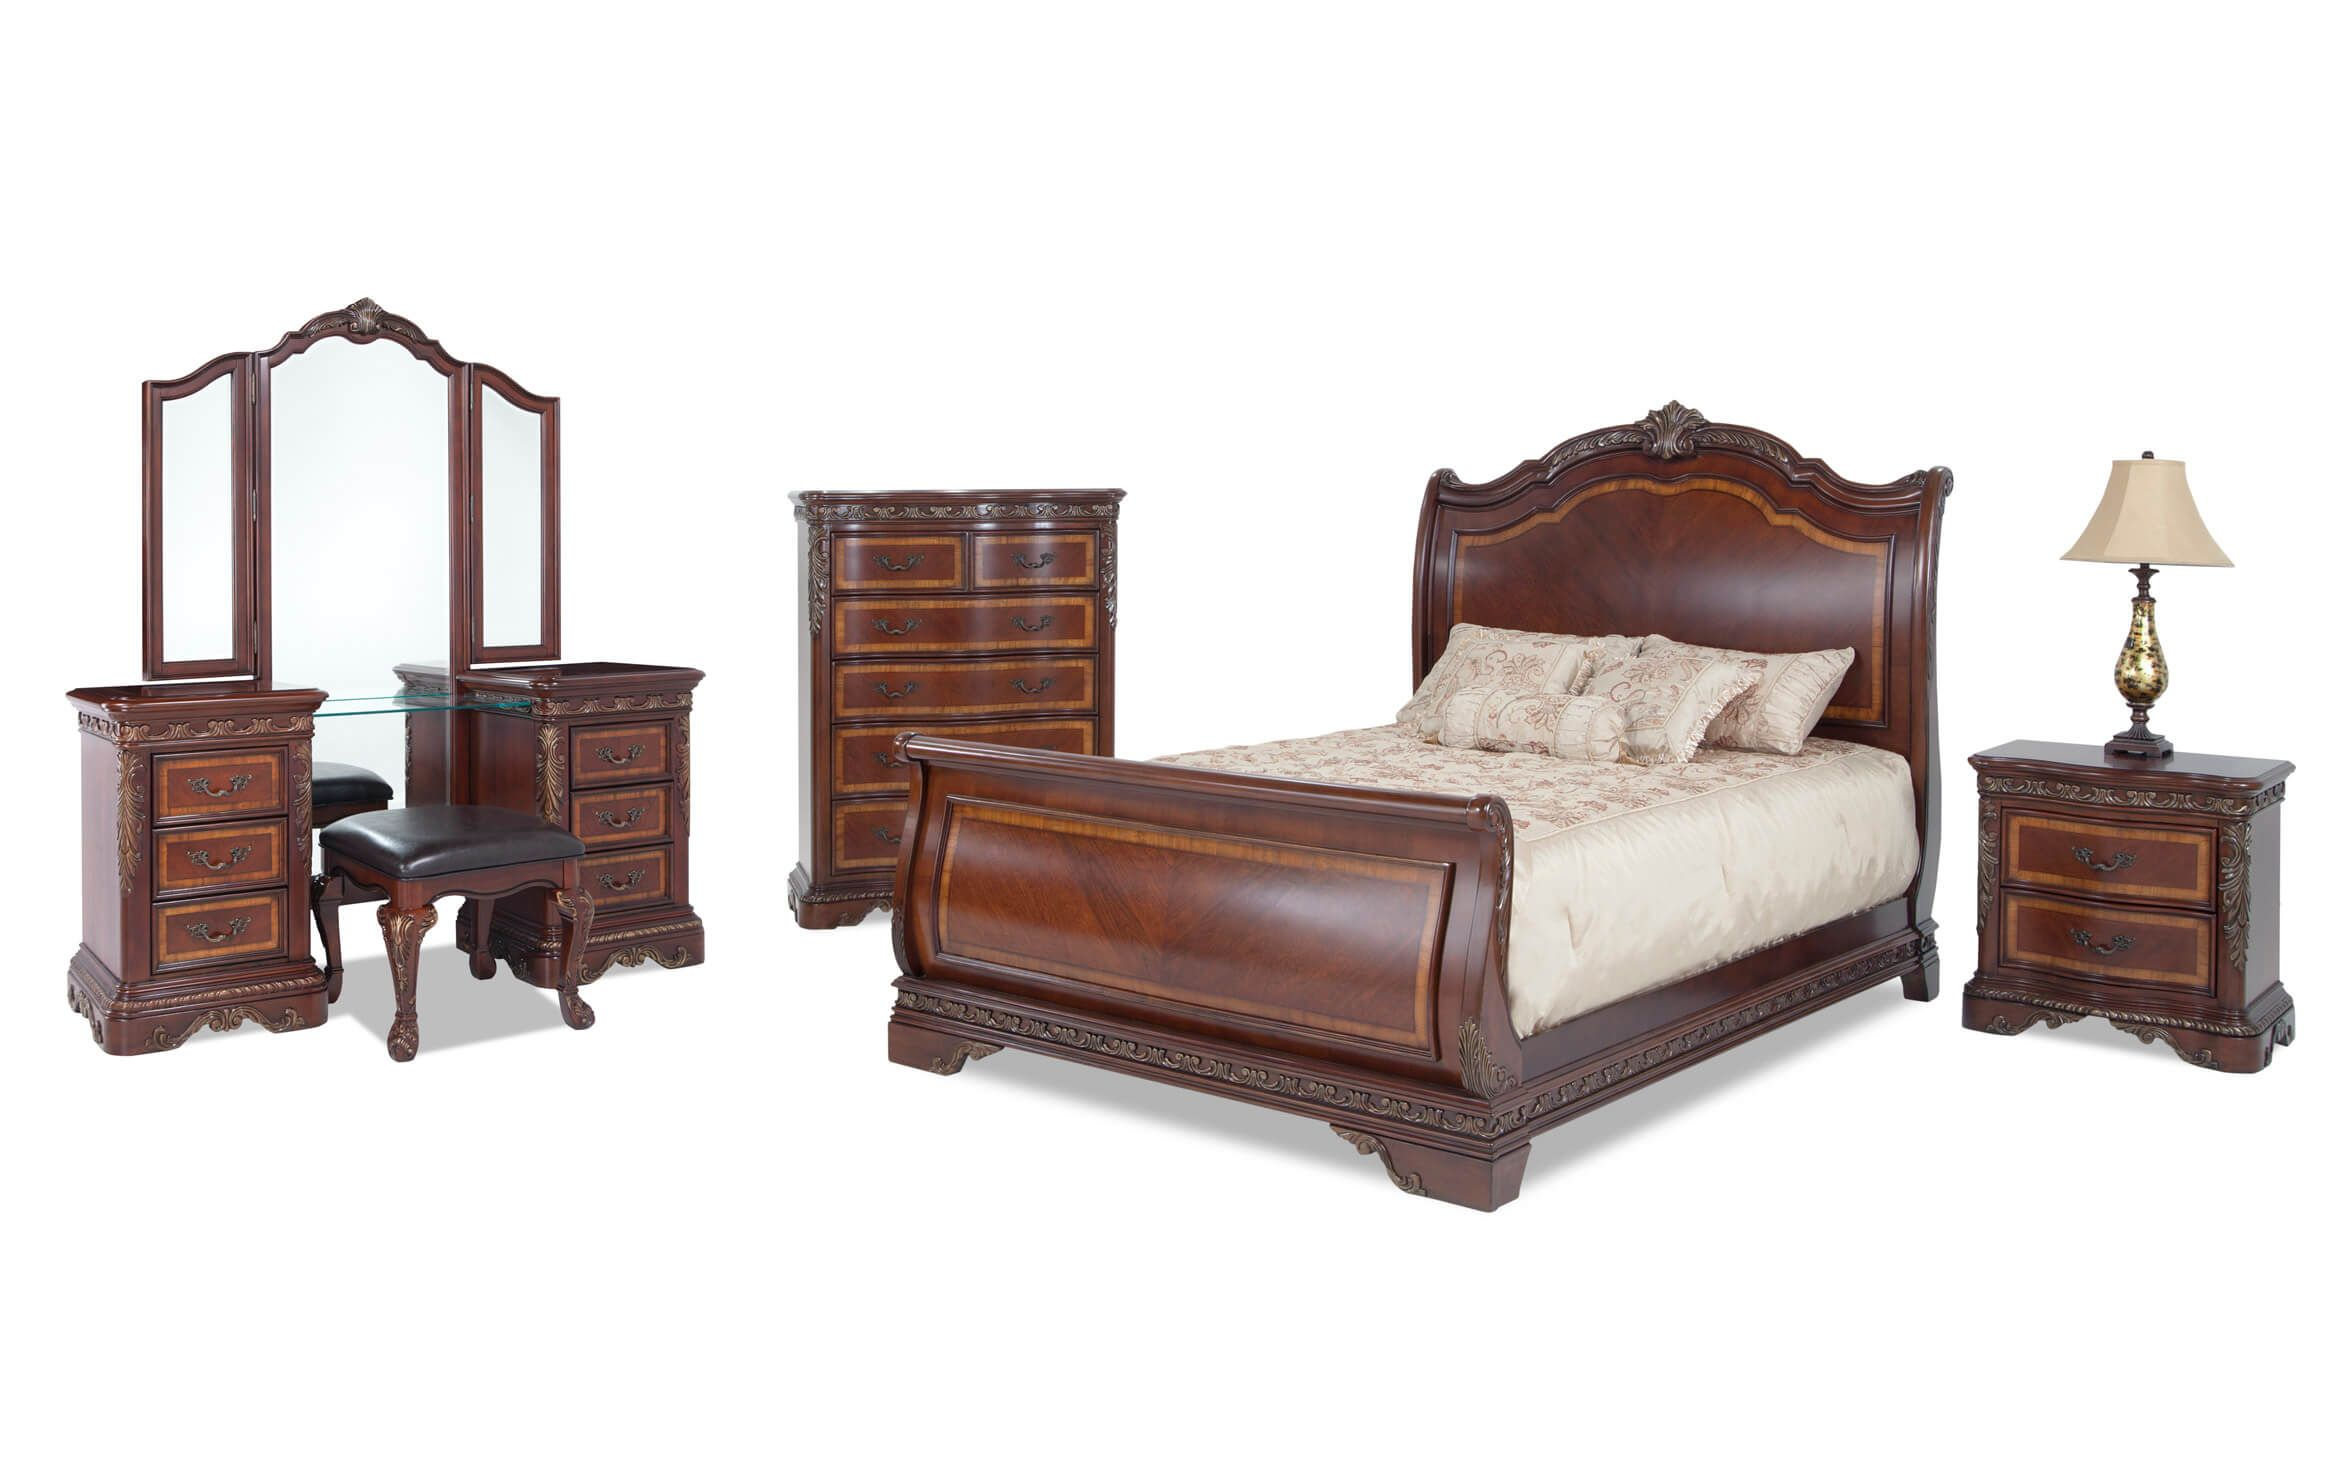 Majestic Bedroom Set King Bedroom Sets Bedroom Sets Queen Bedroom Sets